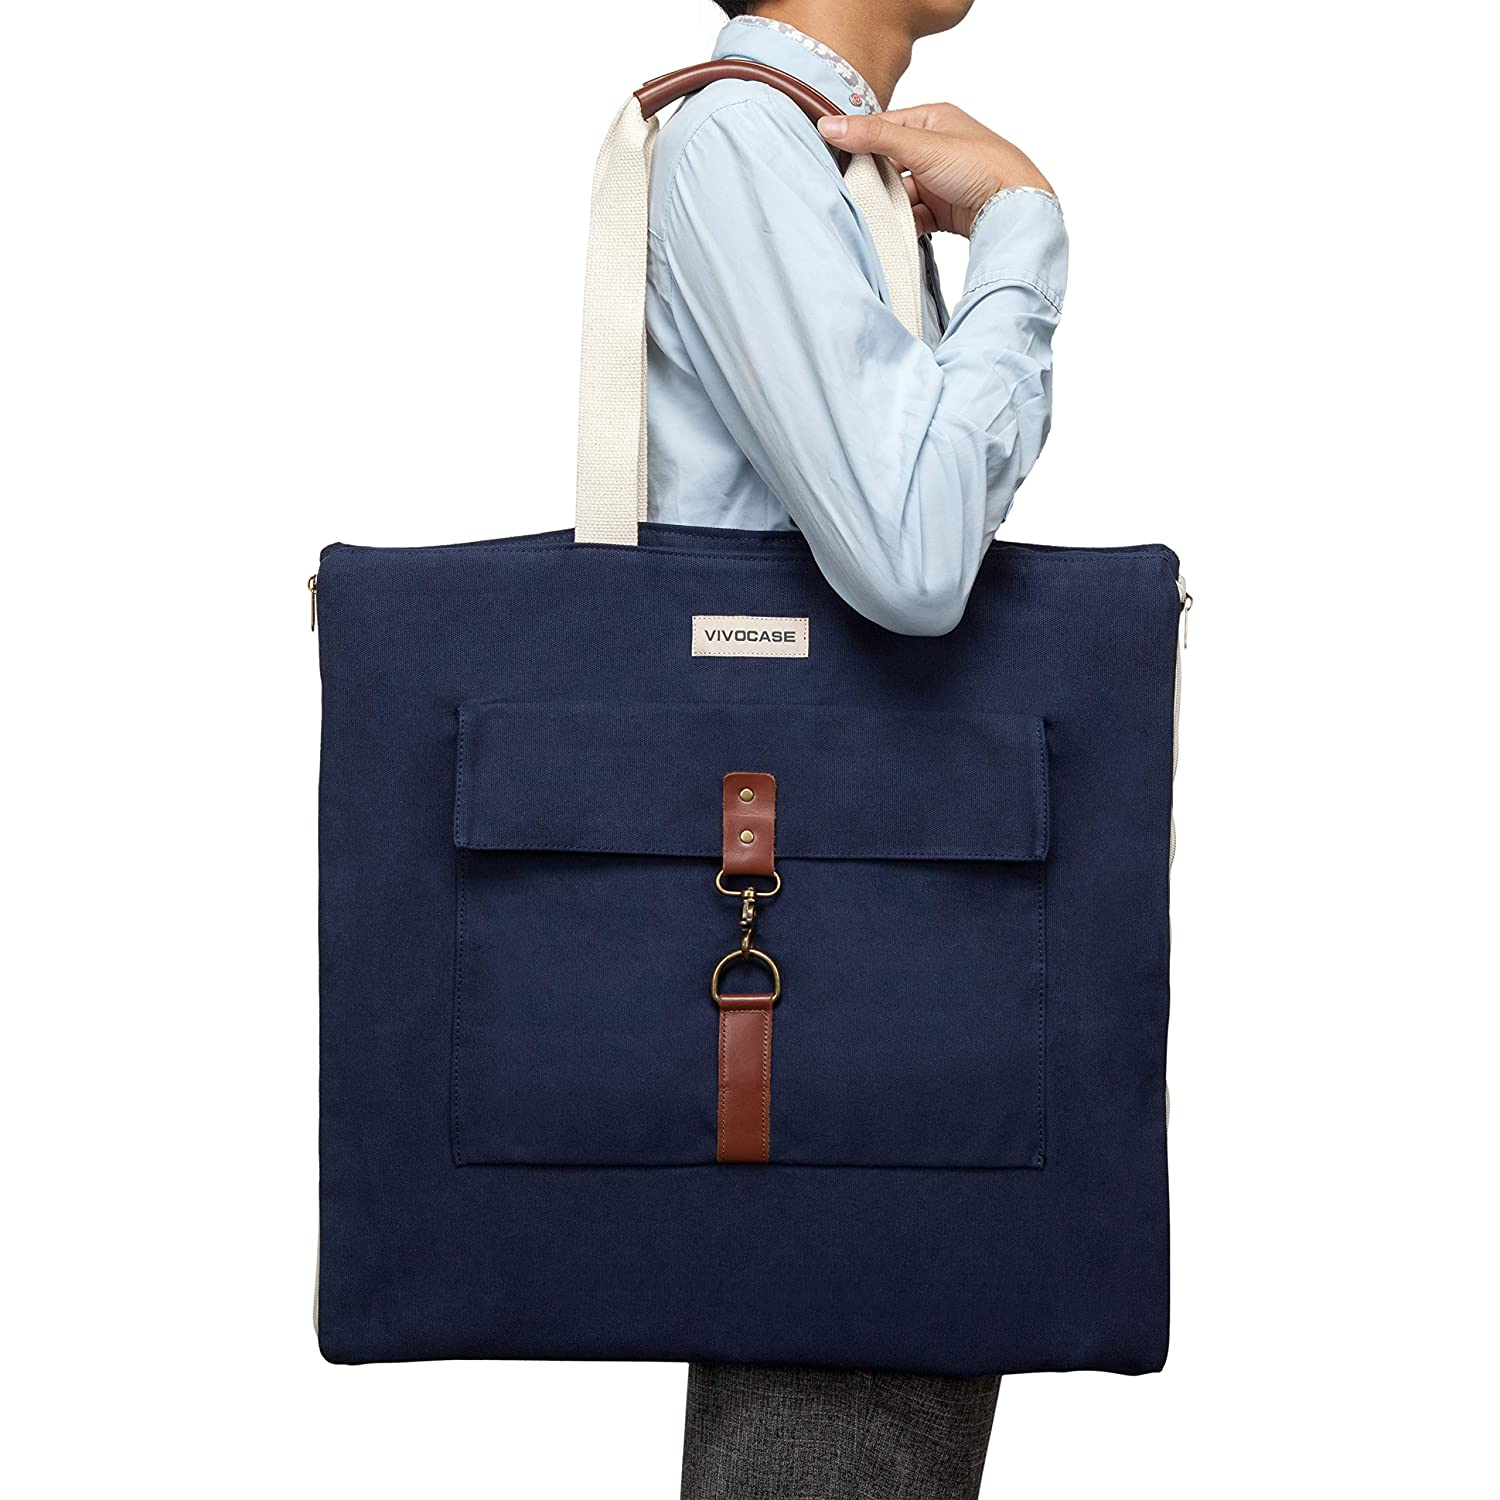 a59098a2ed21 VIVOCASE Premium Canvas Versatile Suit Carry On Garment Bag for Business  and Travel (Blue)